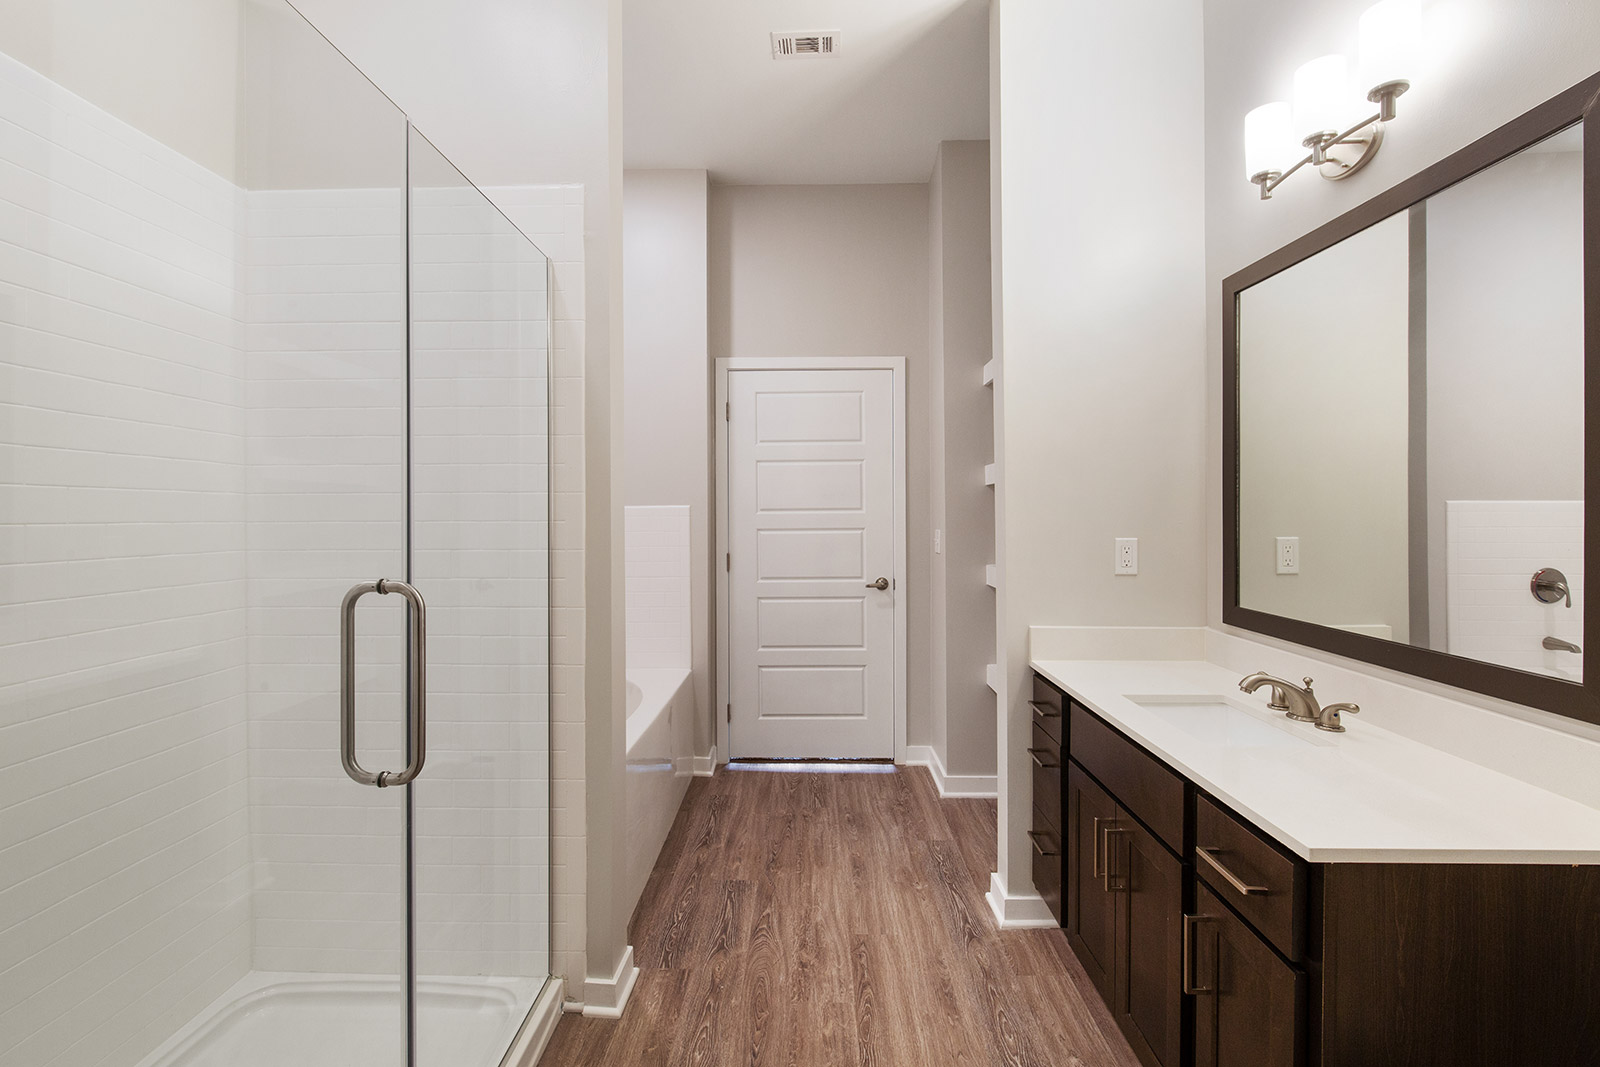 Bathroom Interior at Sawgrass Point in Gonzales, Louisiana